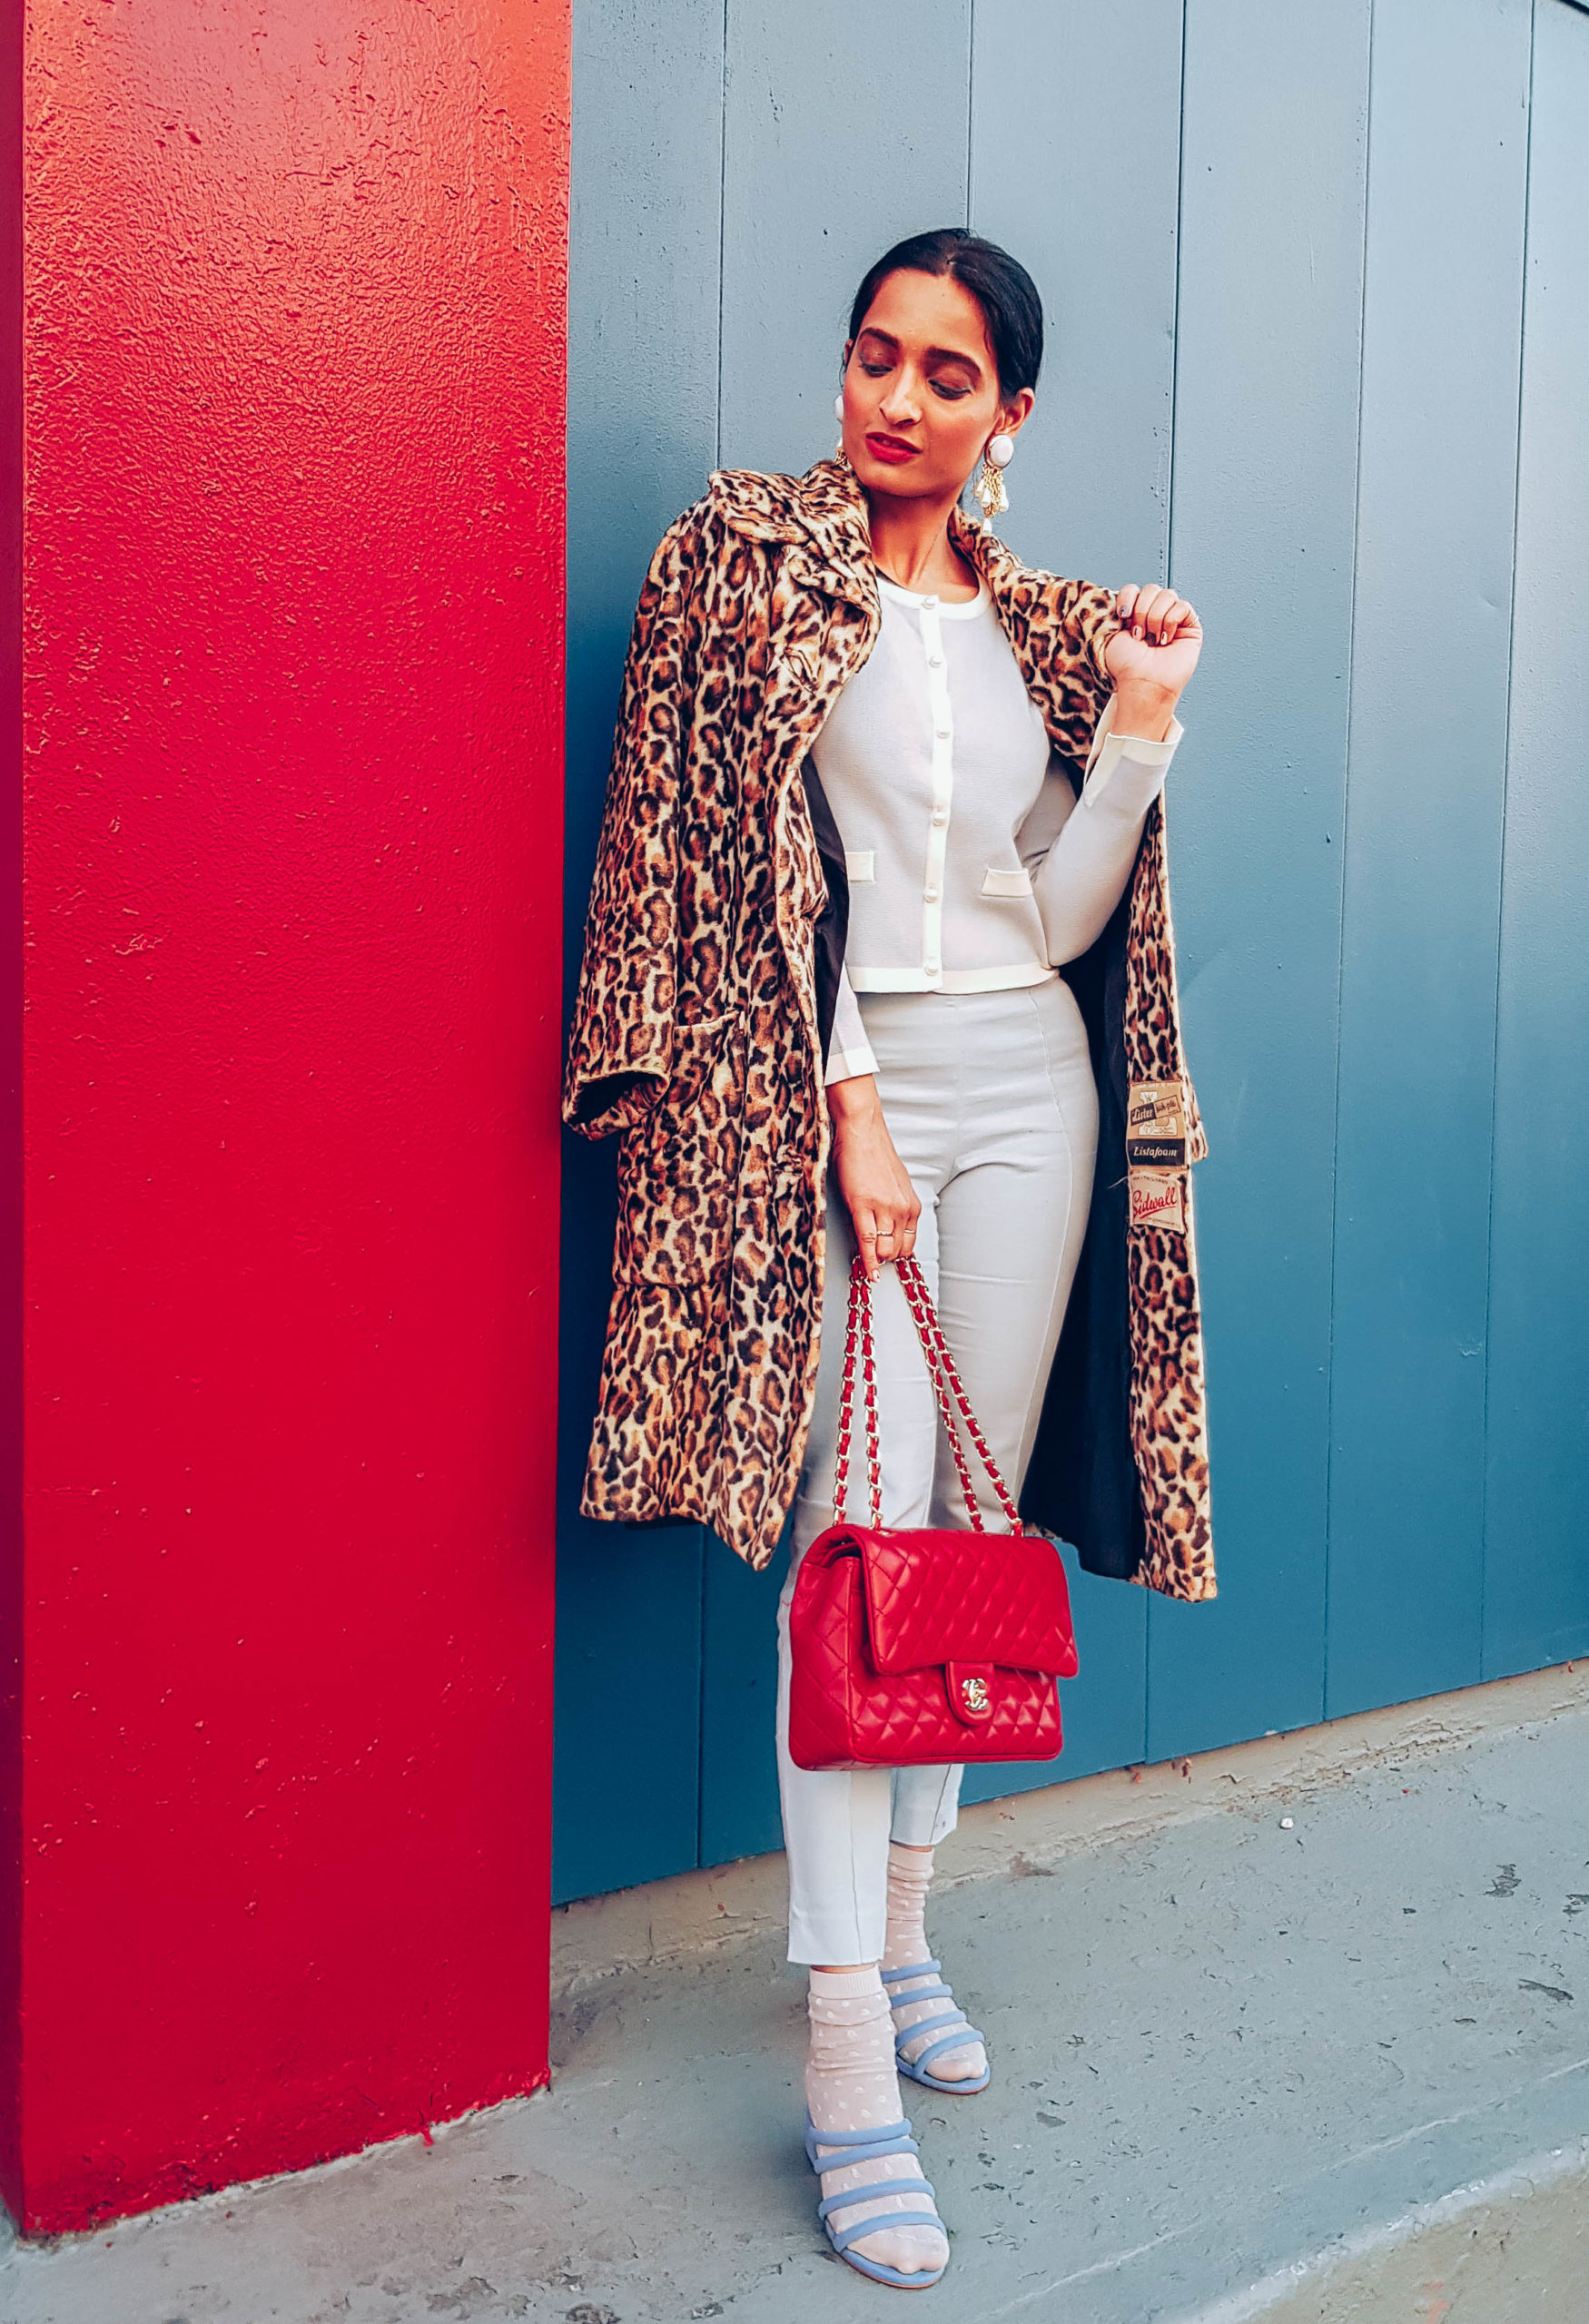 girl fashion blogger wearing pale blue monochromatic outfit with red vintage chanel purse and leopard print coat